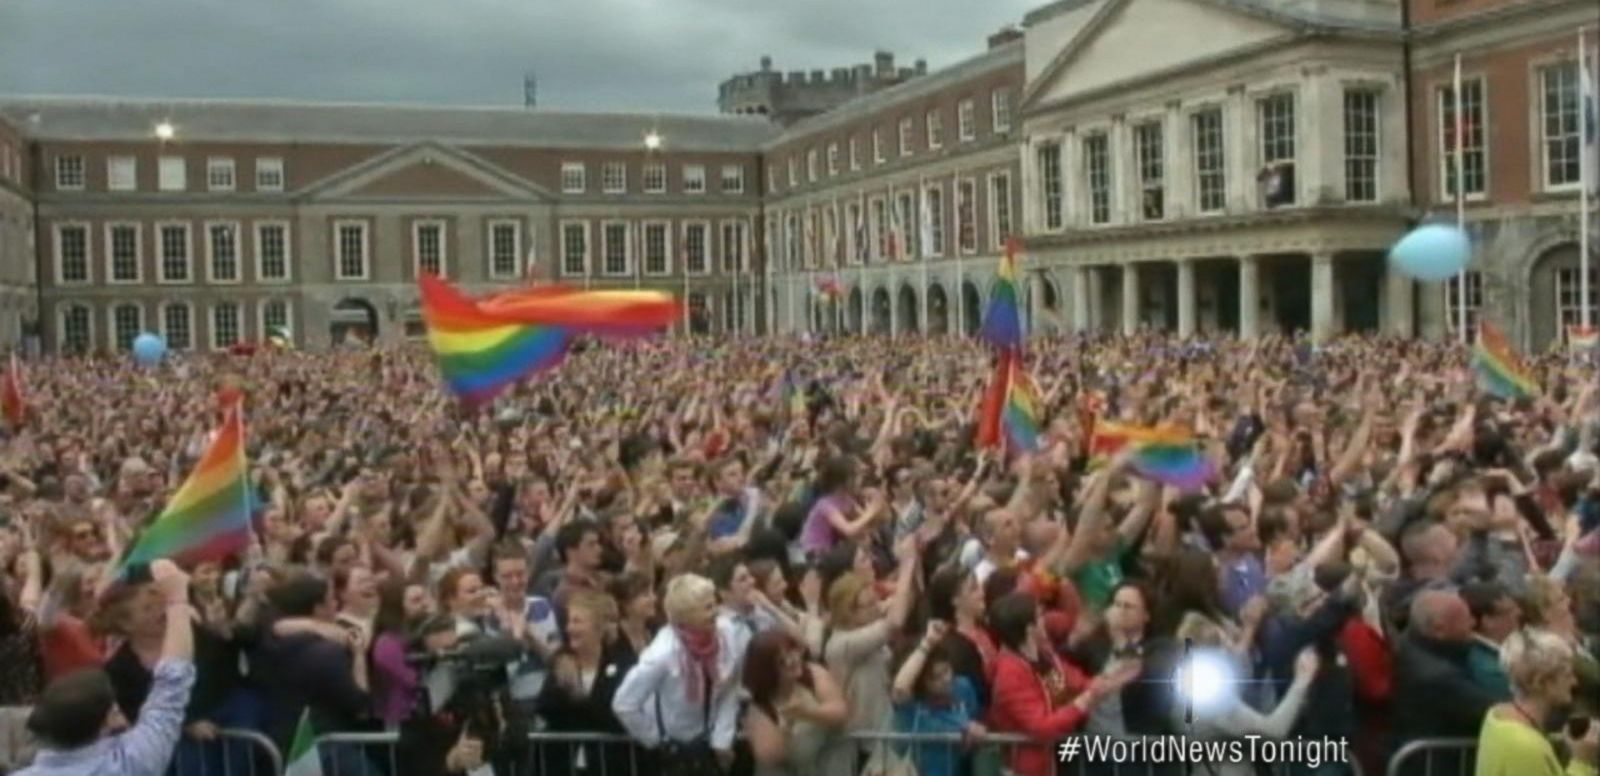 VIDEO: Ireland Legalizes Gay Marriage by Popular Vote